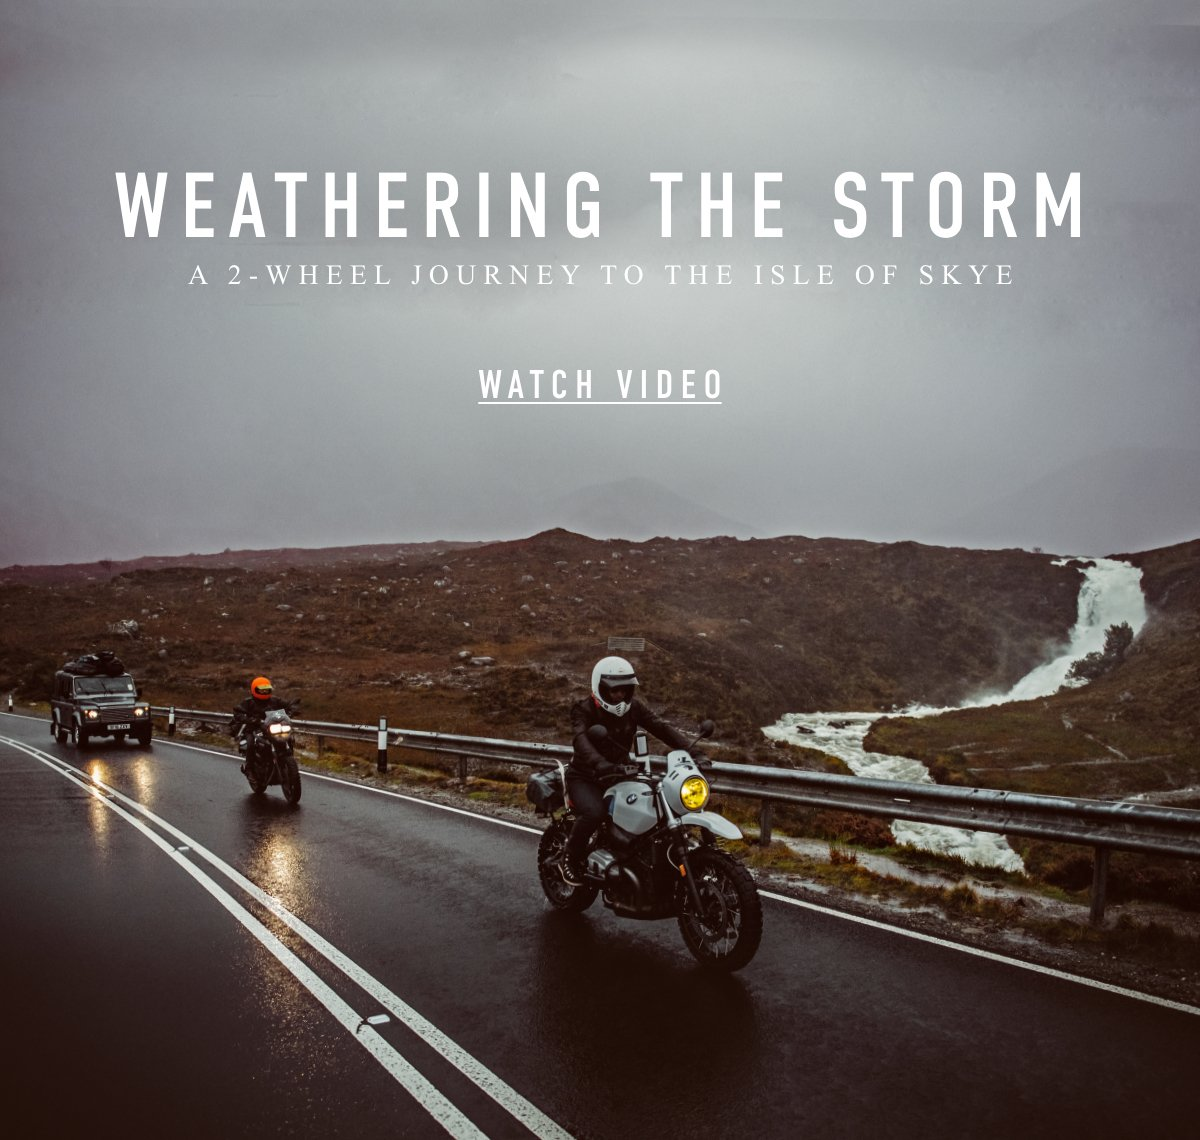 Weathering The Storm - A 2 wheel journey to the Isle of Skye